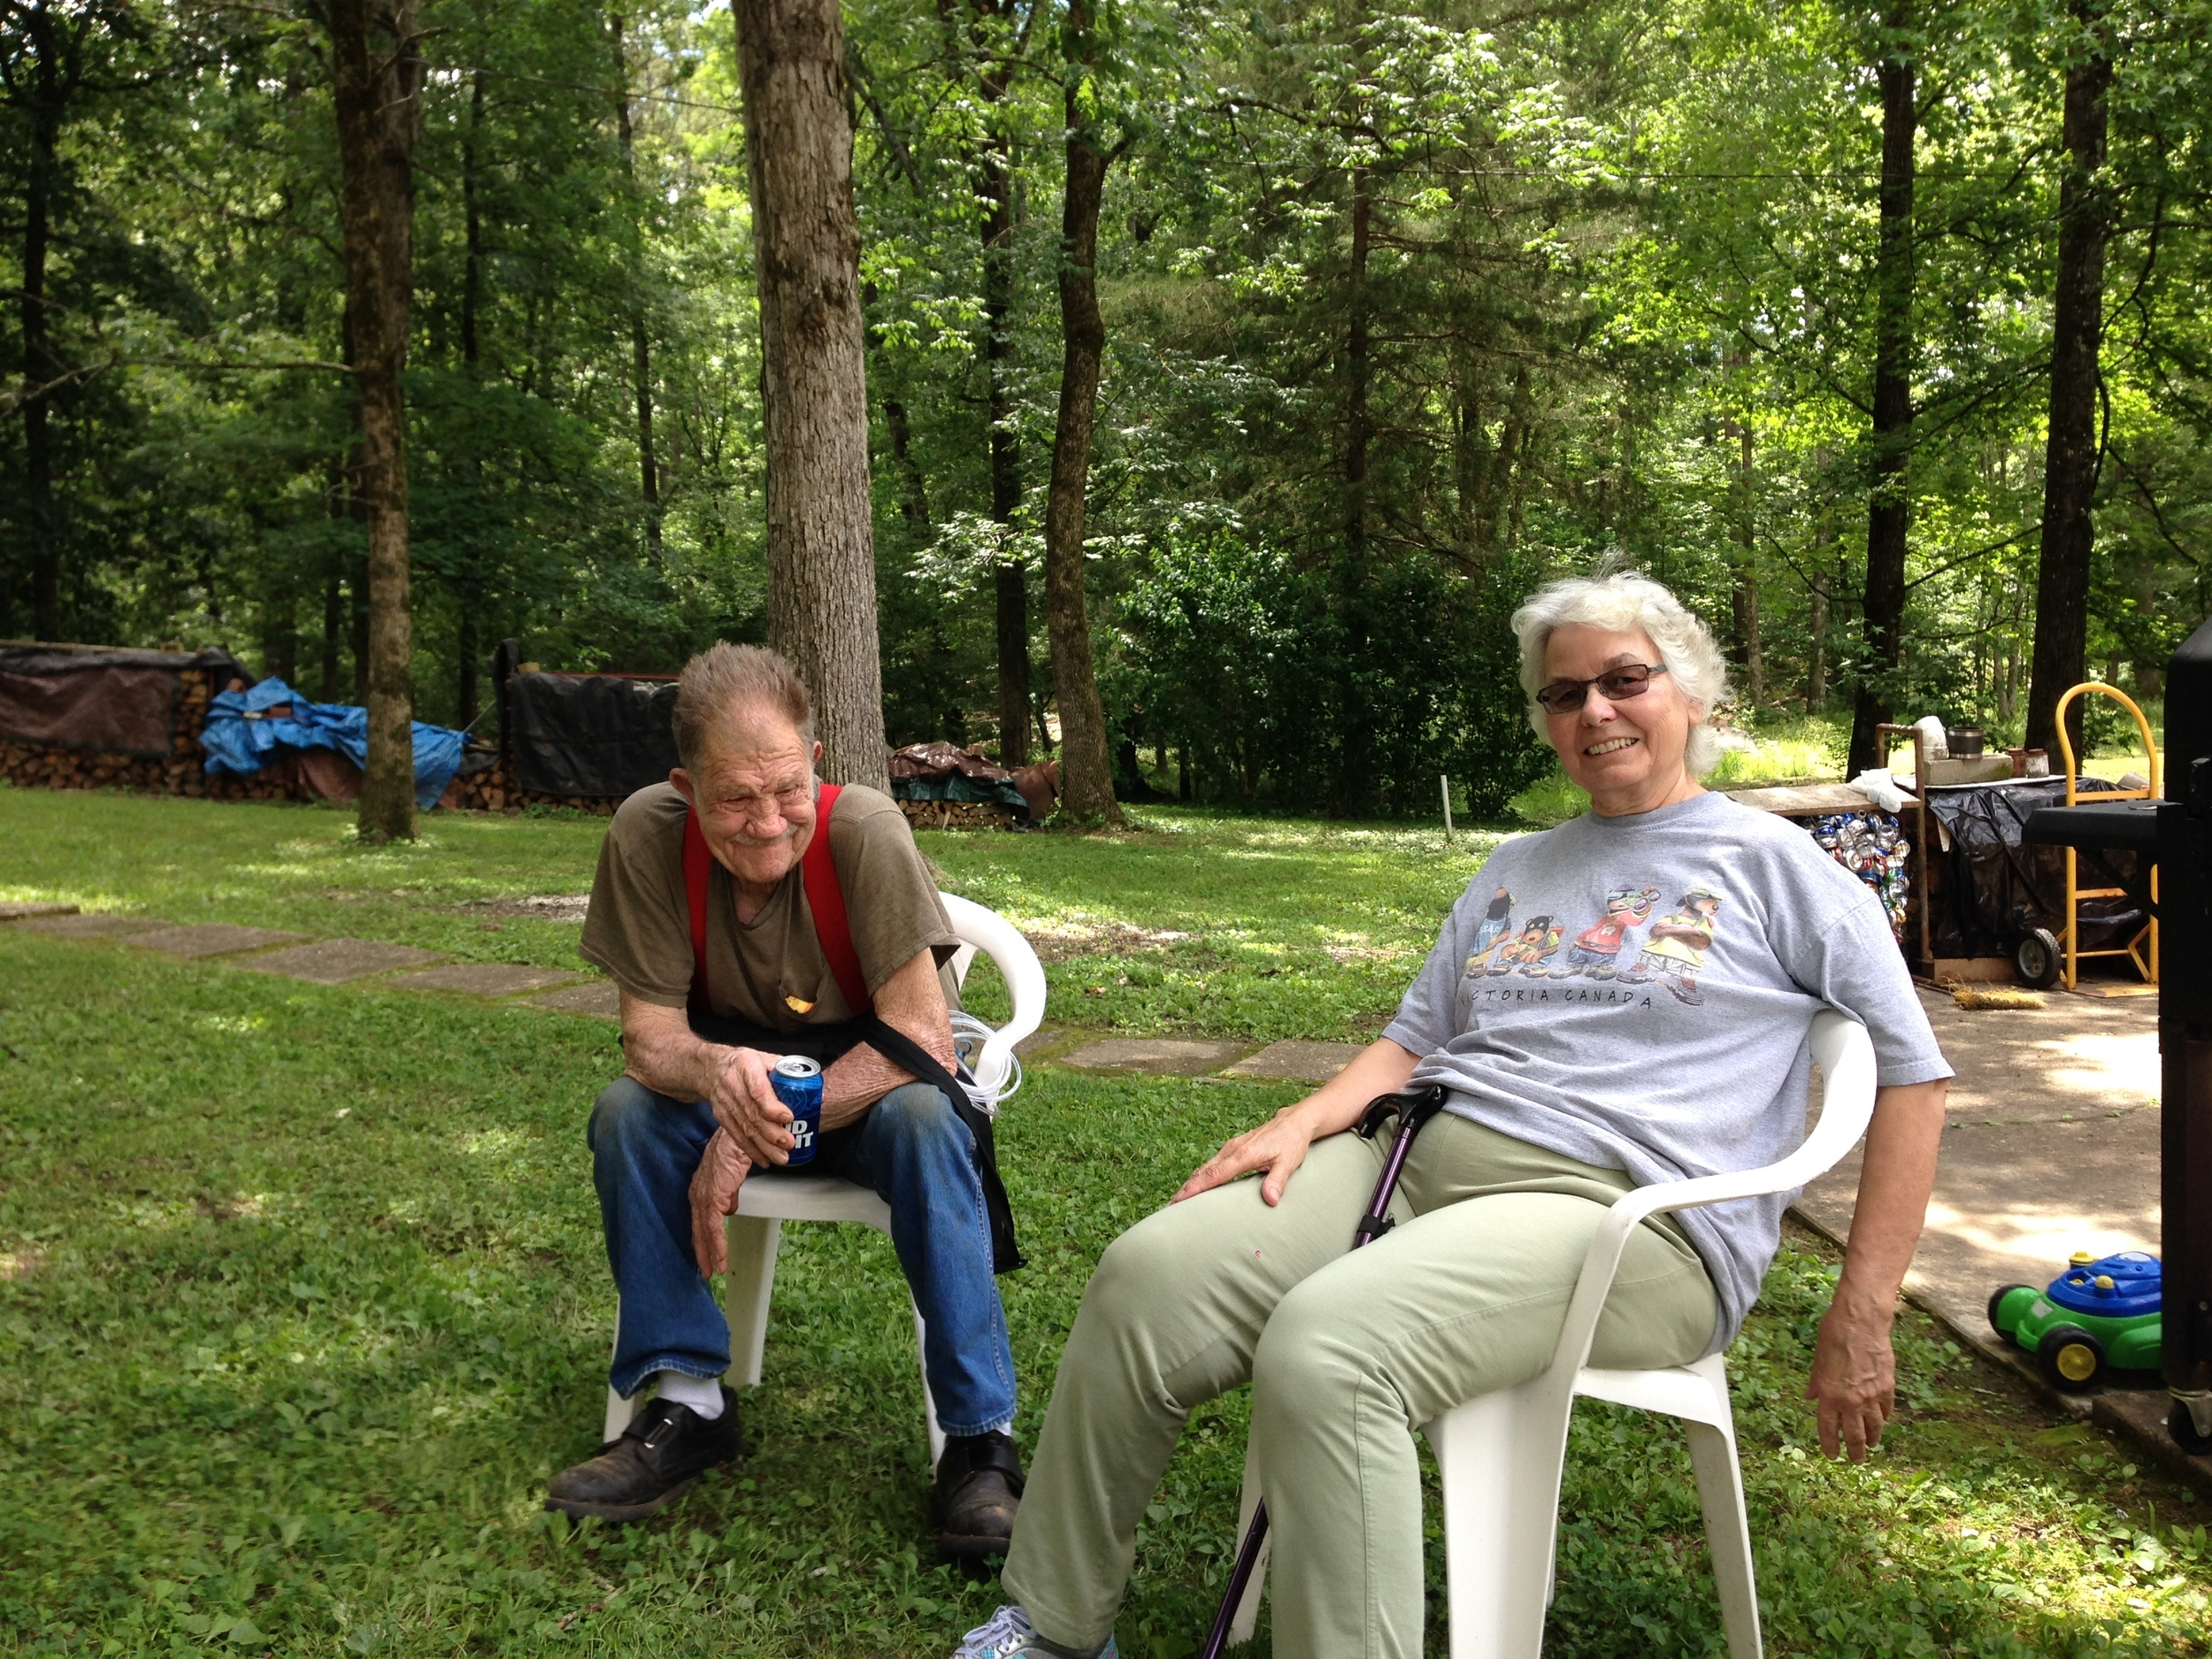 Uncle Chuck and Aunt Millie.(Chuck is my mom's brother.)